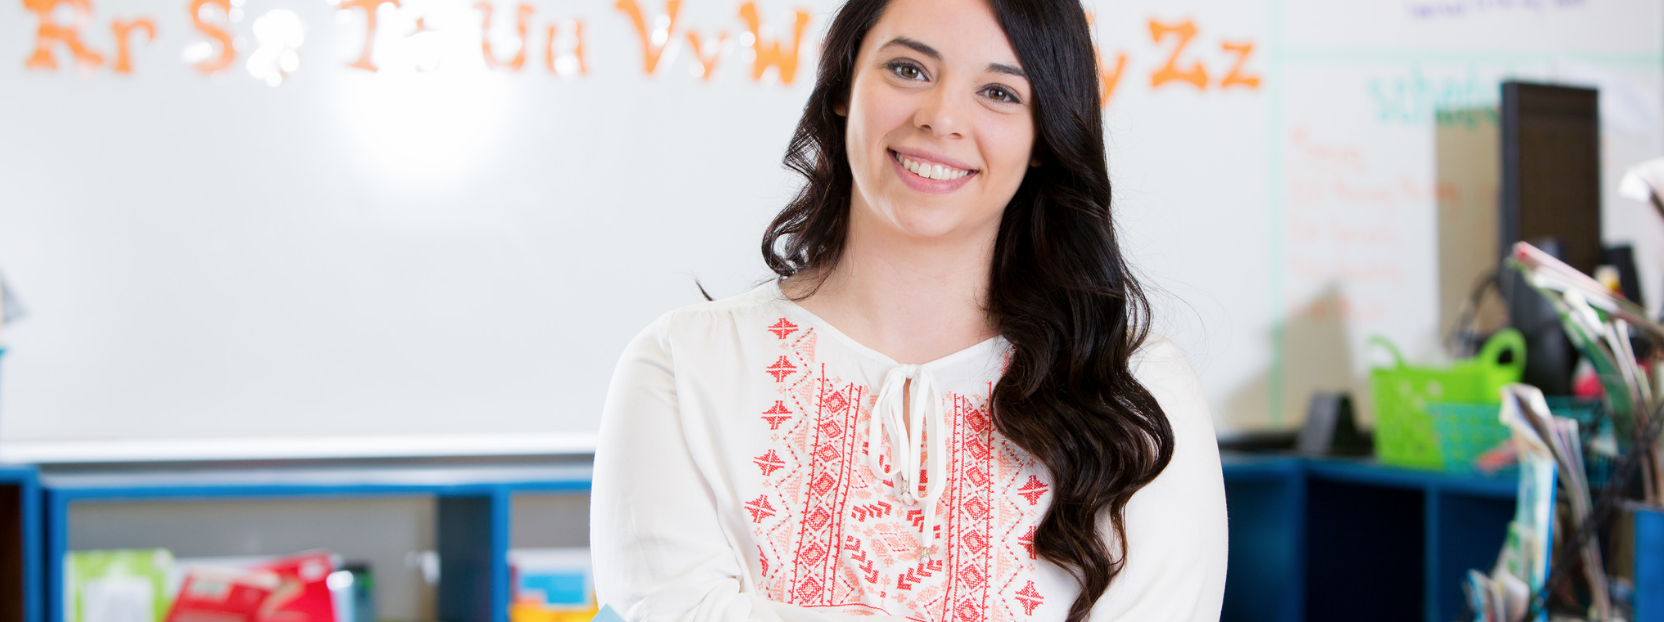 Graduate degrees expand choices for educators